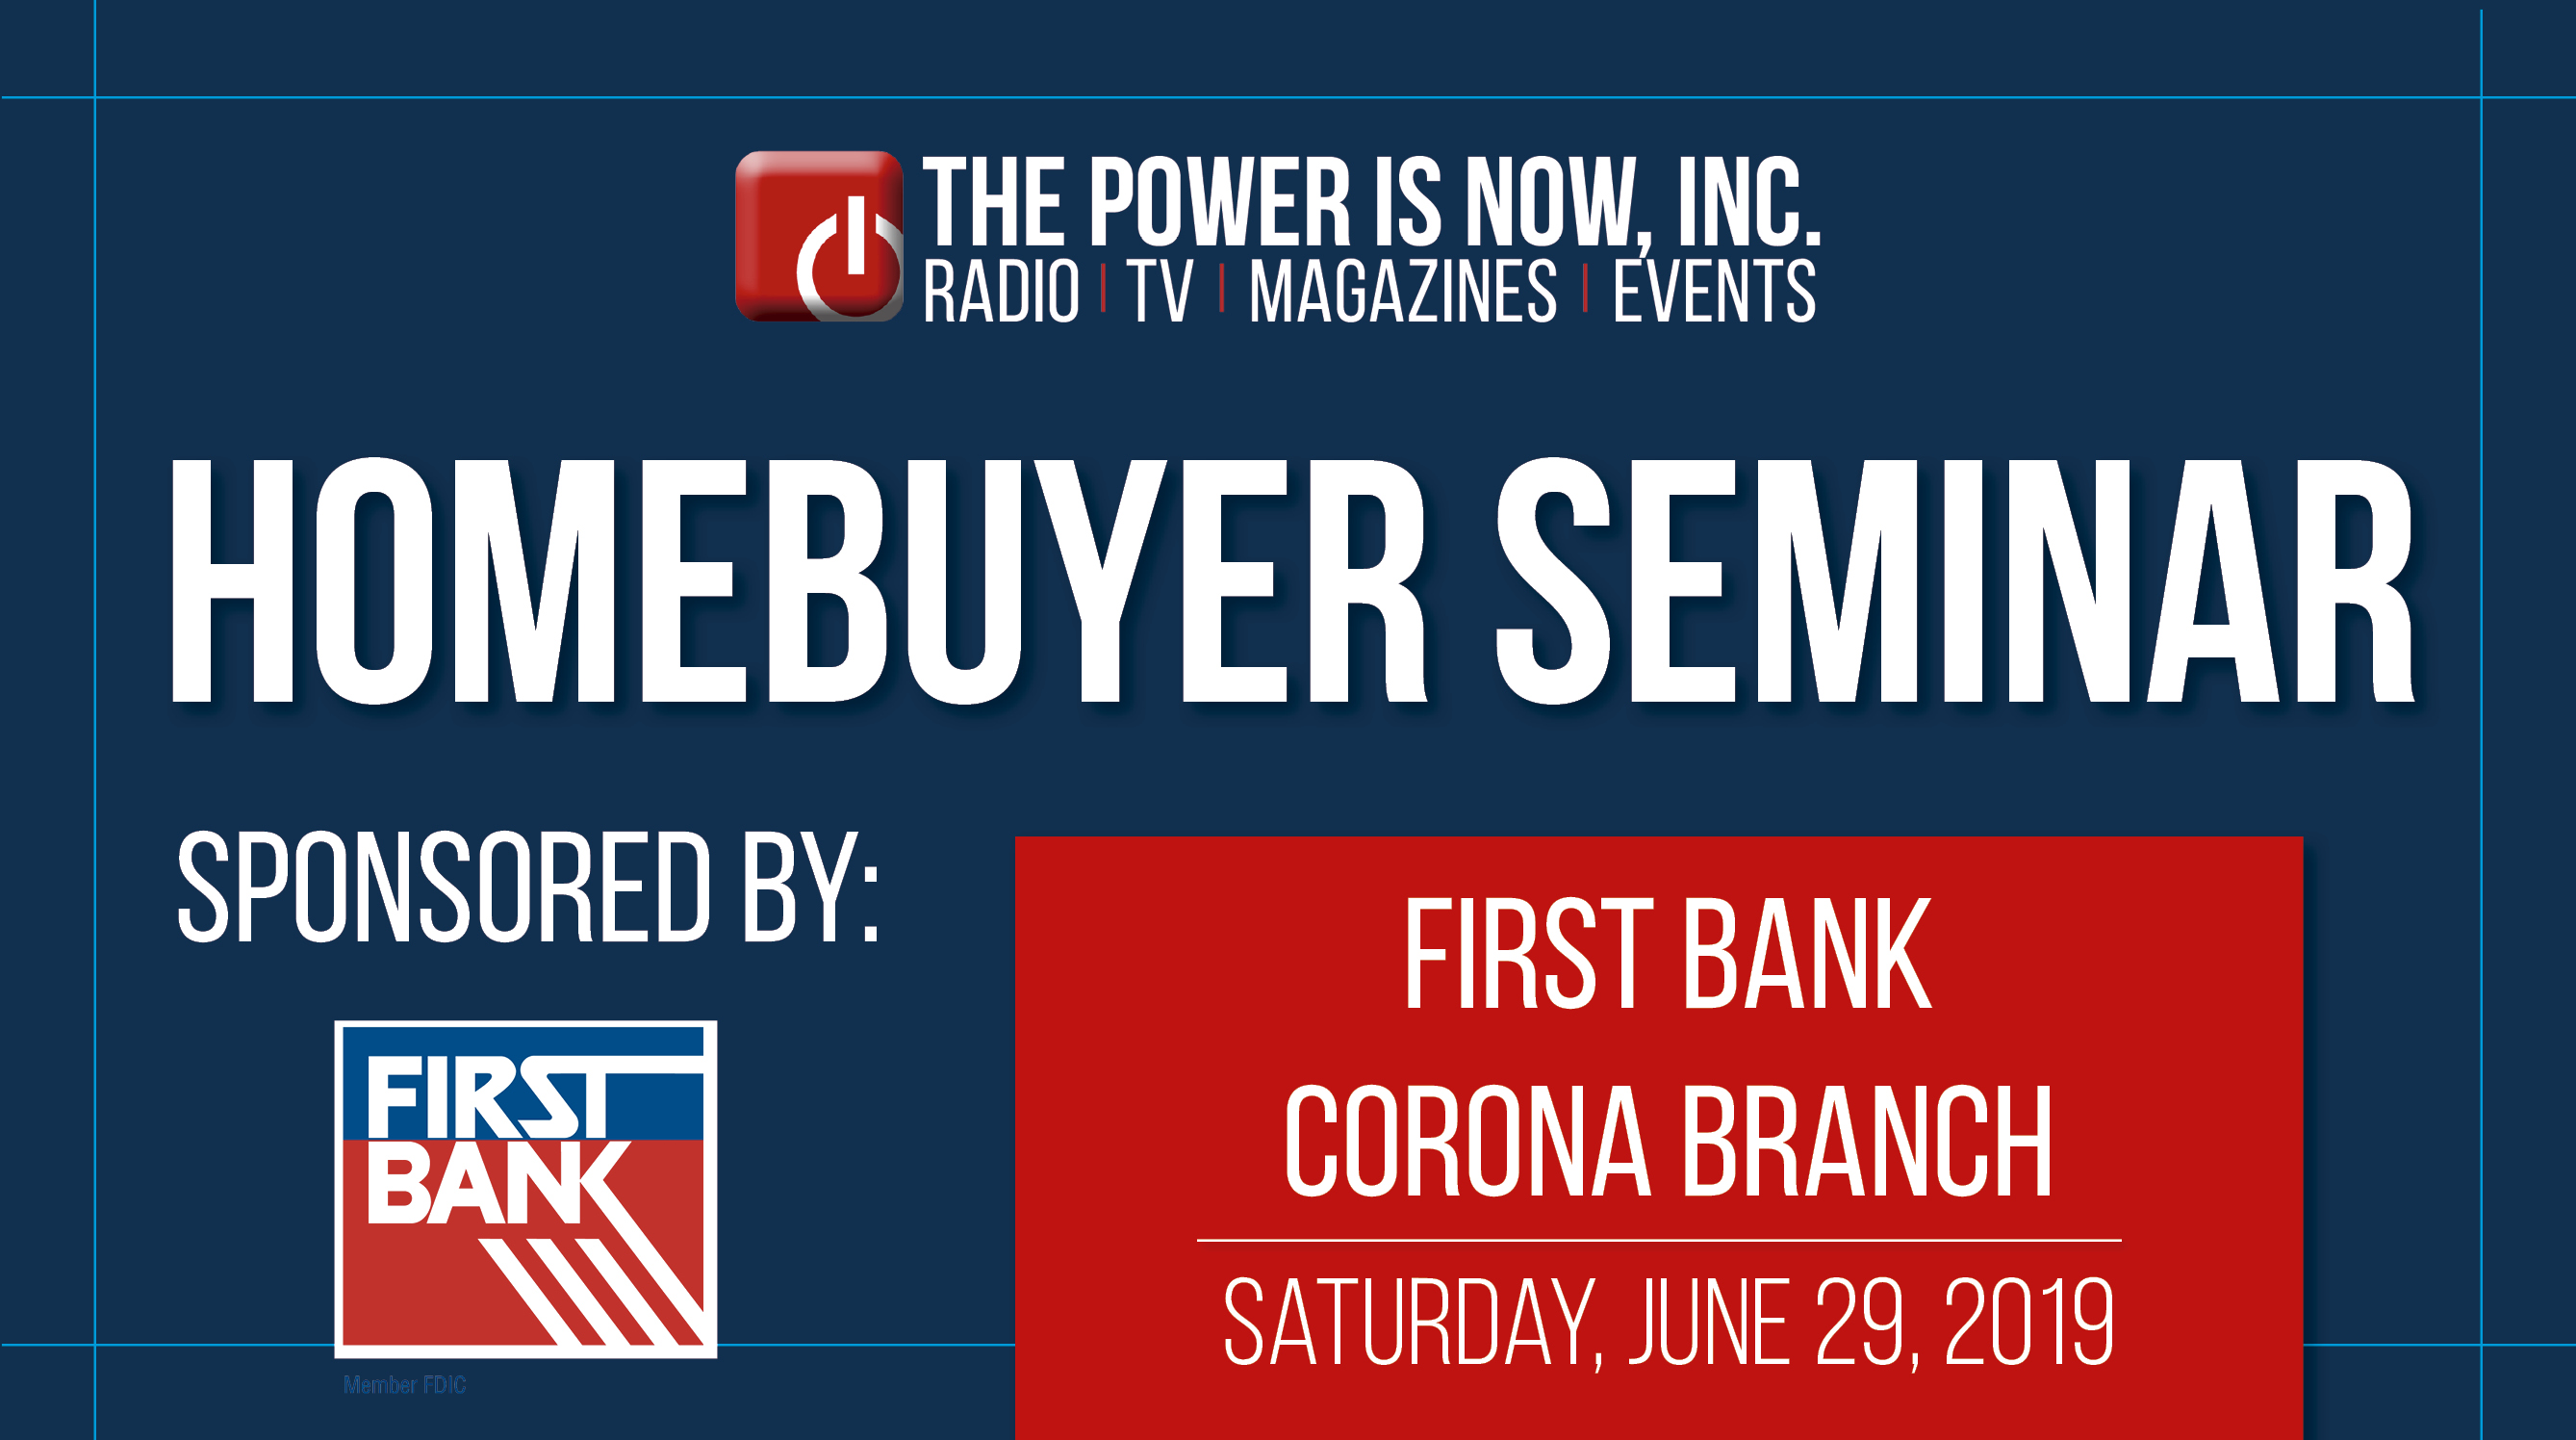 First Time Homebuyer Seminar, First Bank Corona Branch